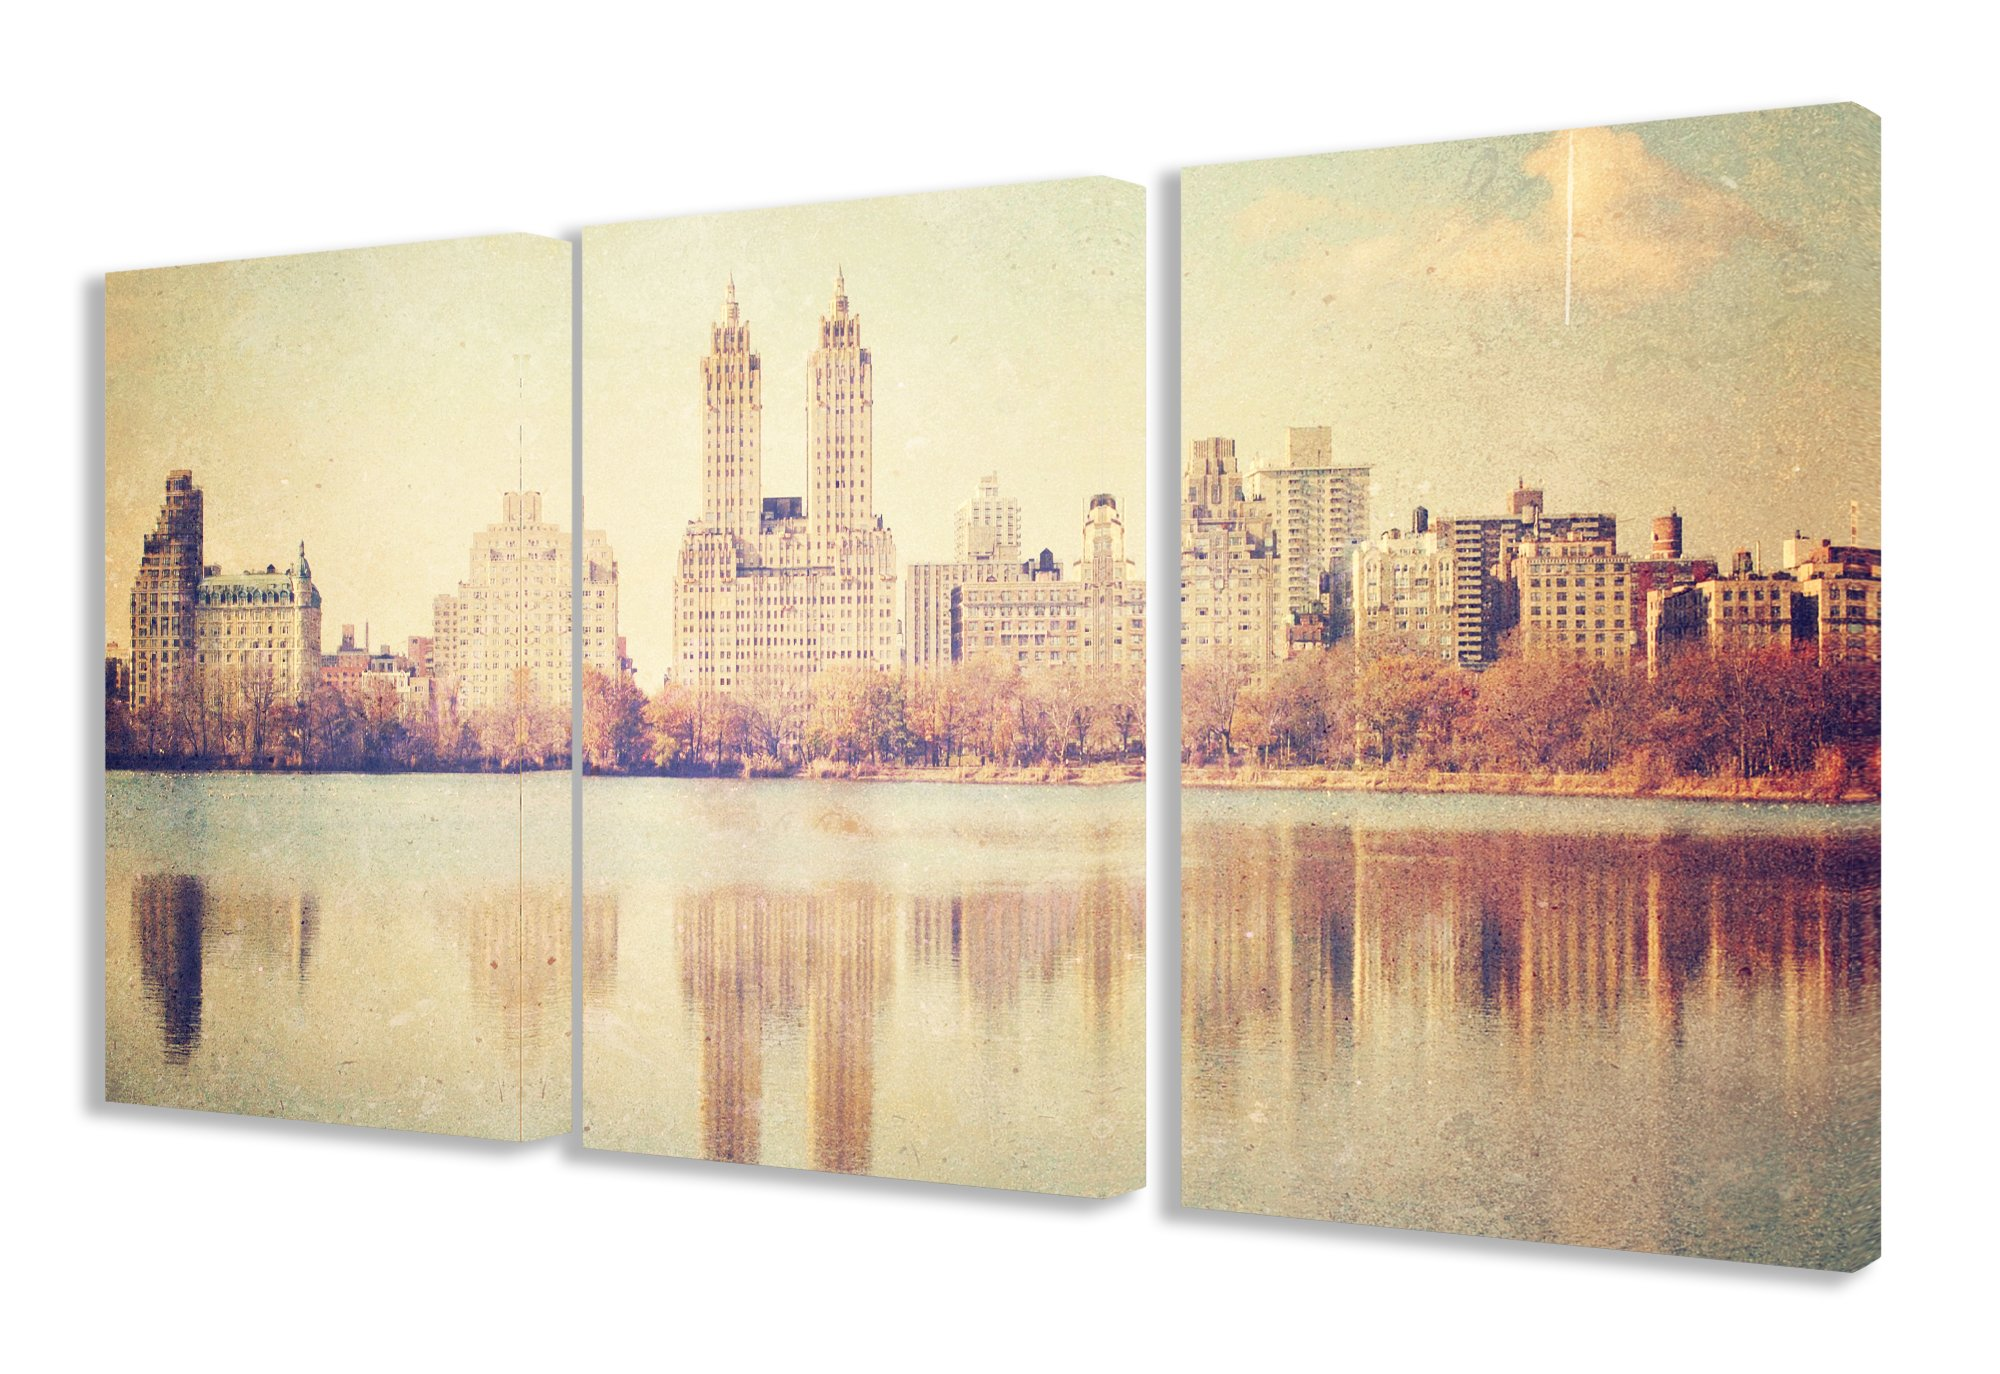 Stupell Home Décor 3 Piece Central Park Overlook Photographic Triptych Canvas Art Set, 16 x 1.5 x 24, Proudly Made in USA